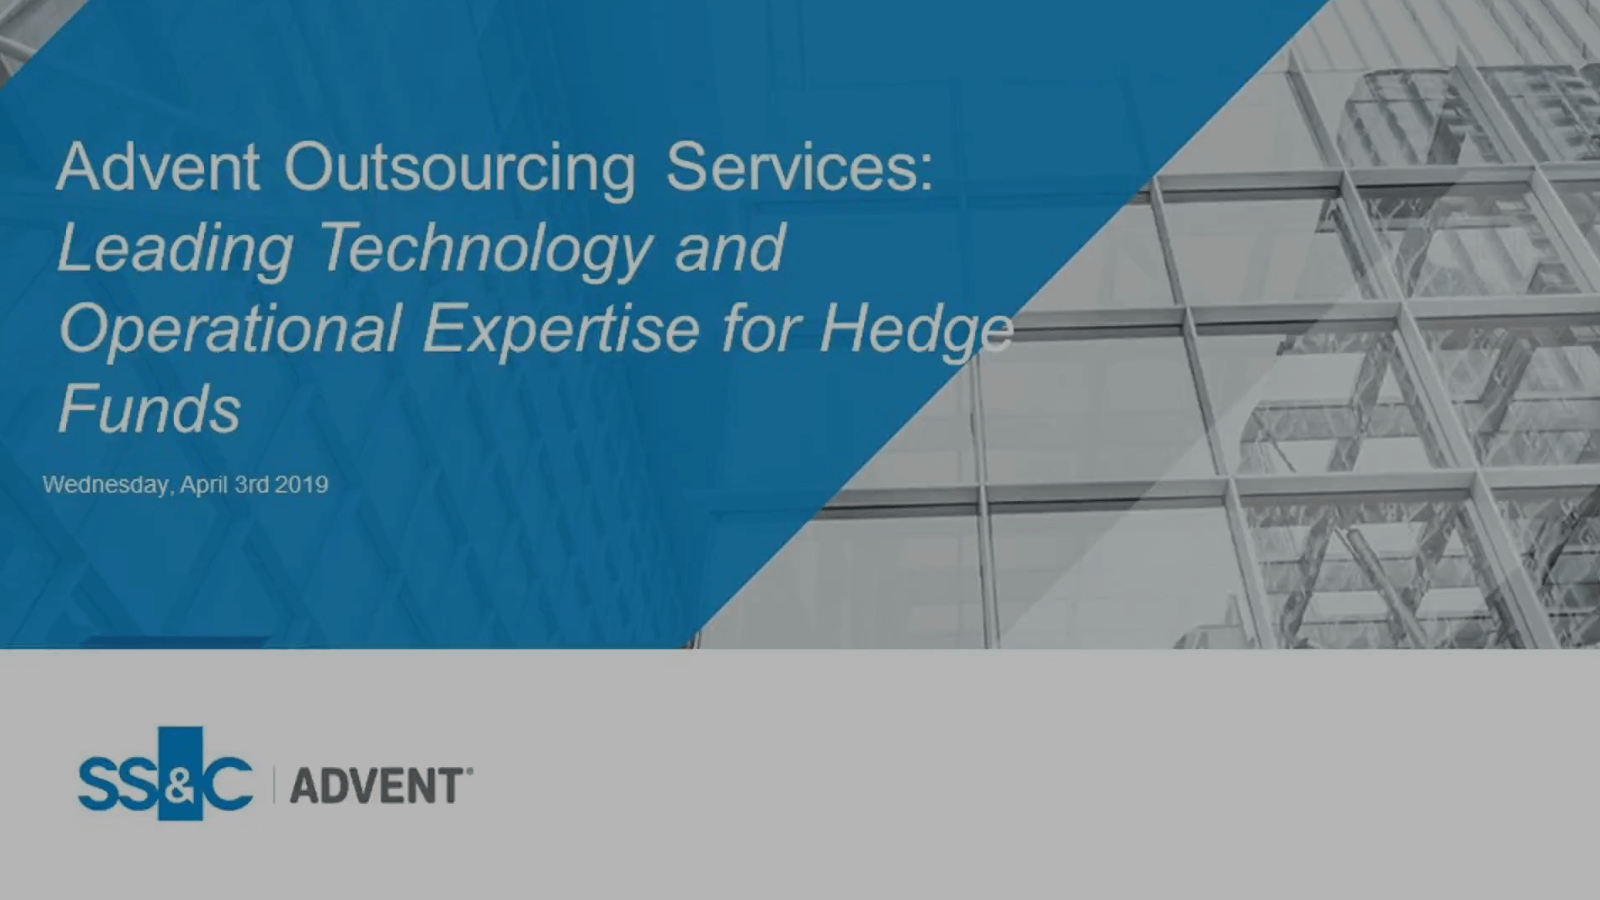 poster image for Advent Outsourcing Services